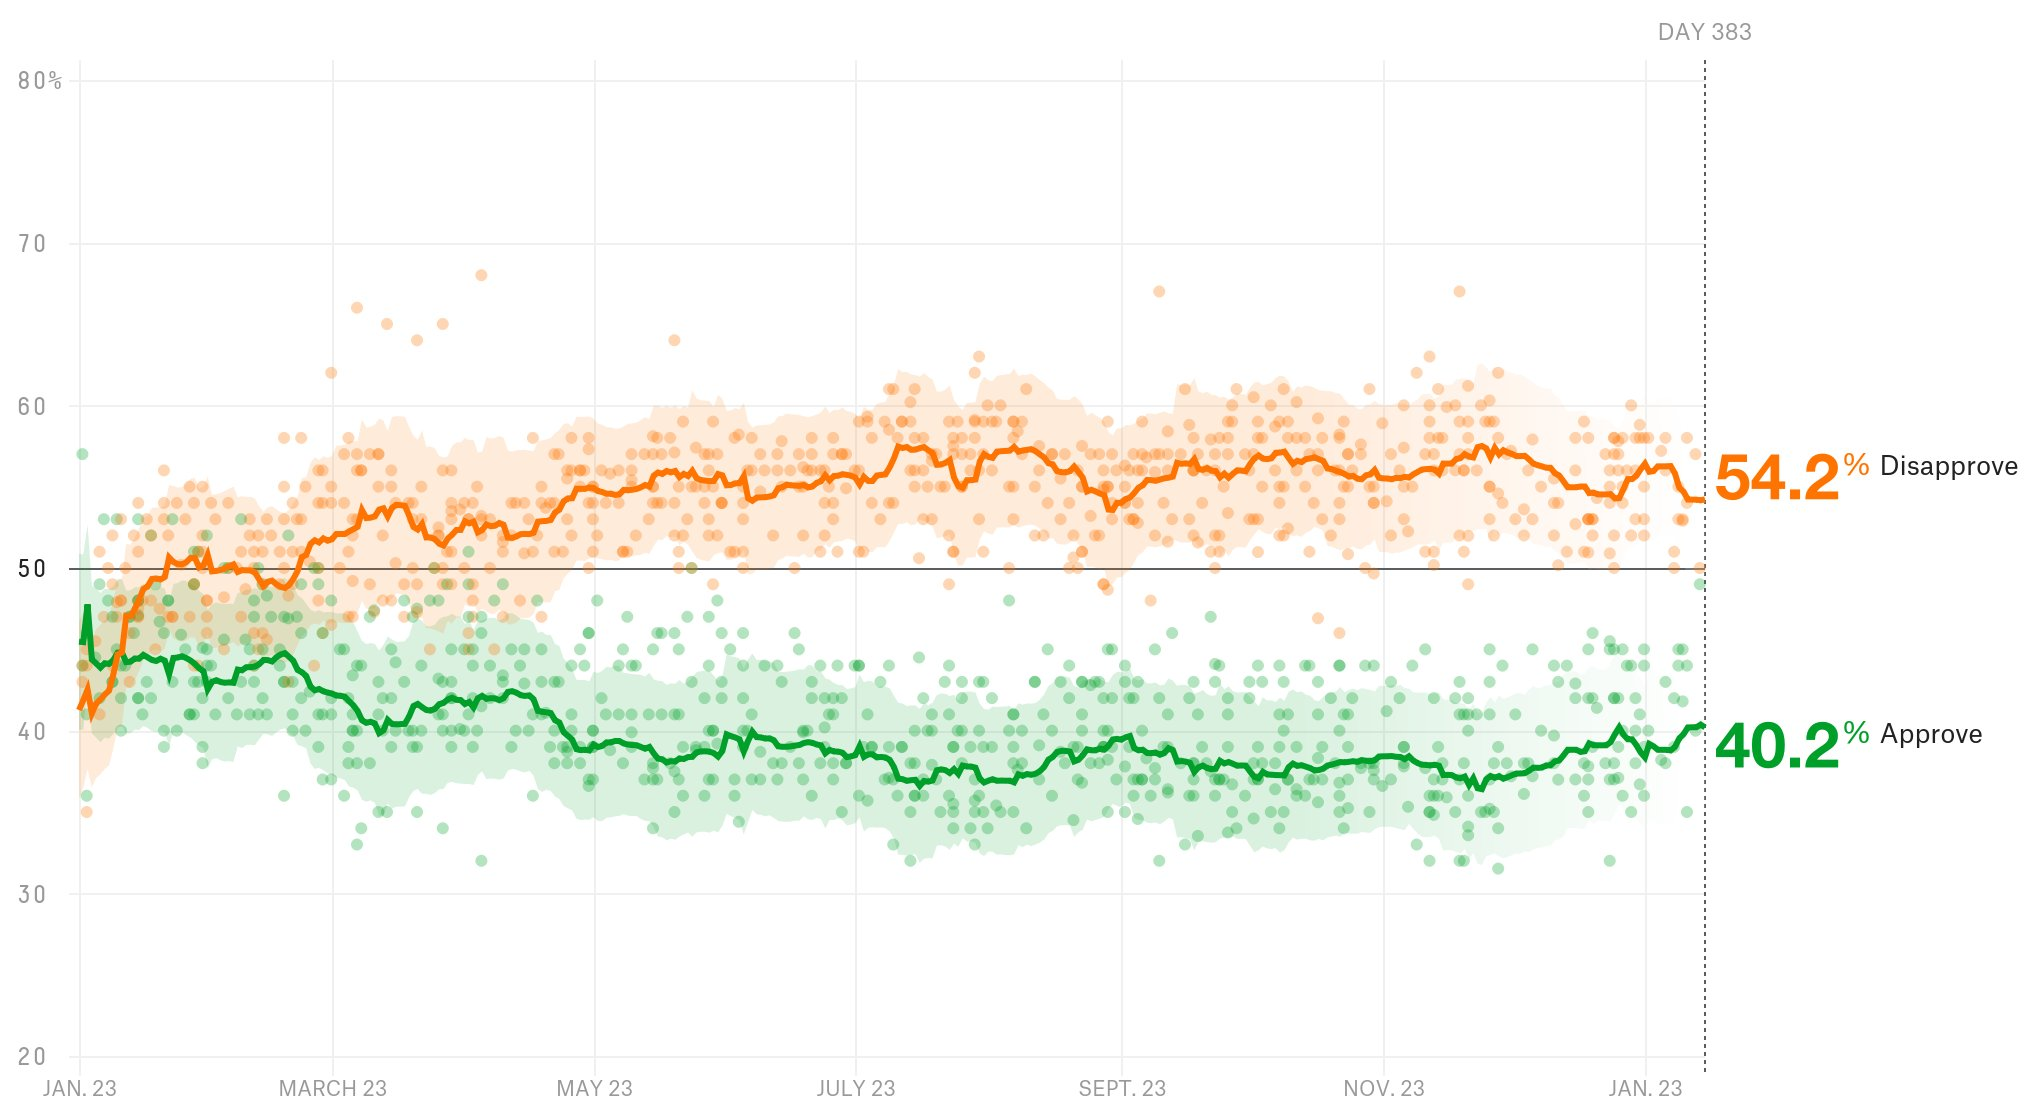 President Donald Trump has a 40.2% approval rating. https://t.co/gFuJdJjGOg https://t.co/PrUTvauP3U